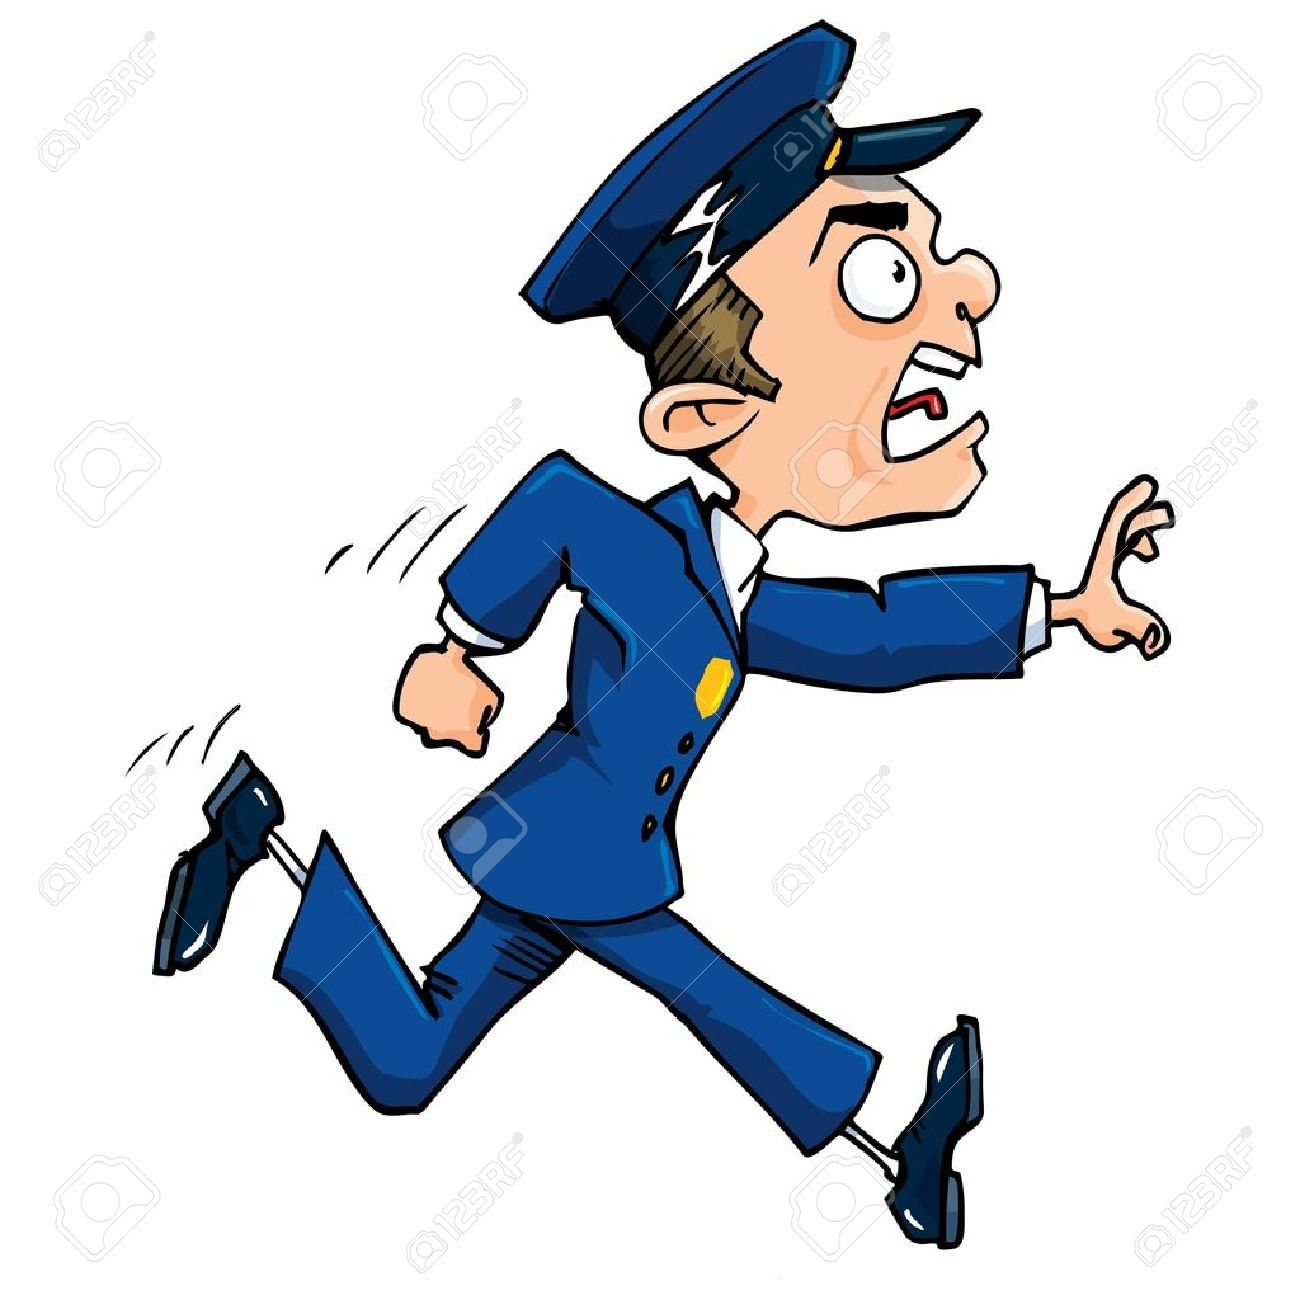 1300x1300 Cartoon Police Officer Images Amp Stock Pictures. Royalty Free